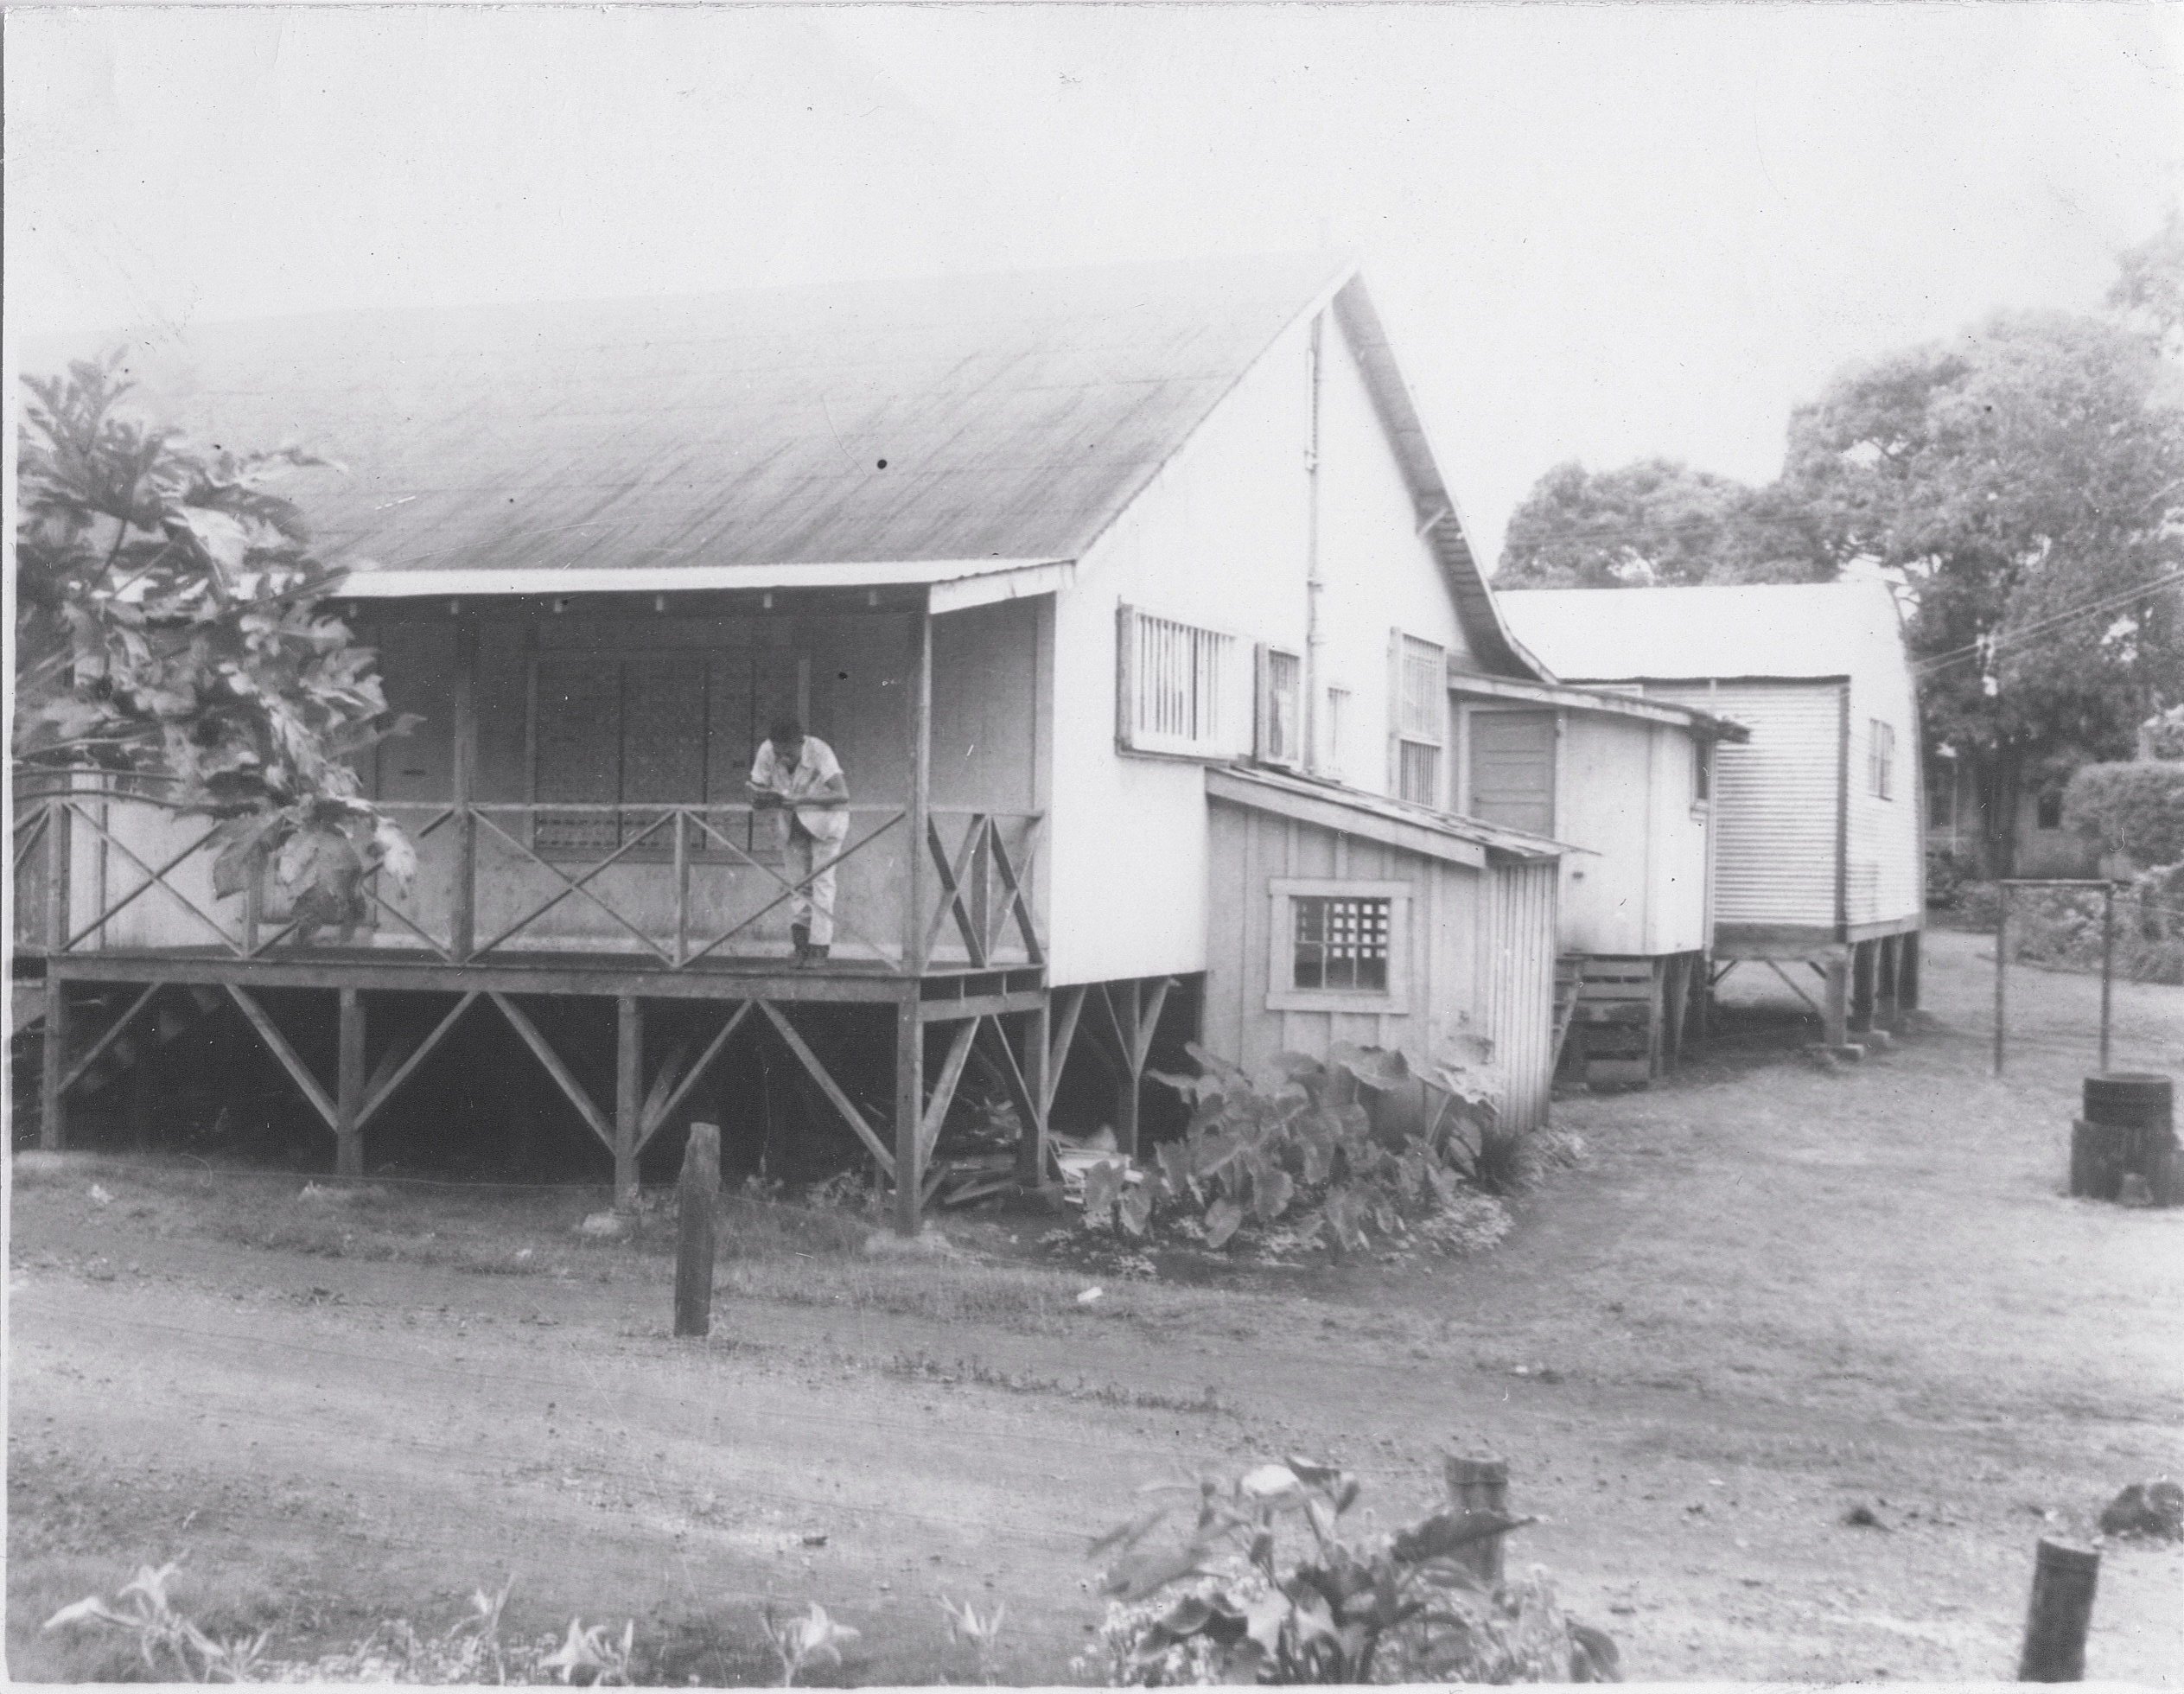 The back of the old Kunia Camp store, pre-World War II. The Sekiya family lived nearby. (Camp photos courtesy of Ray Sekiya)